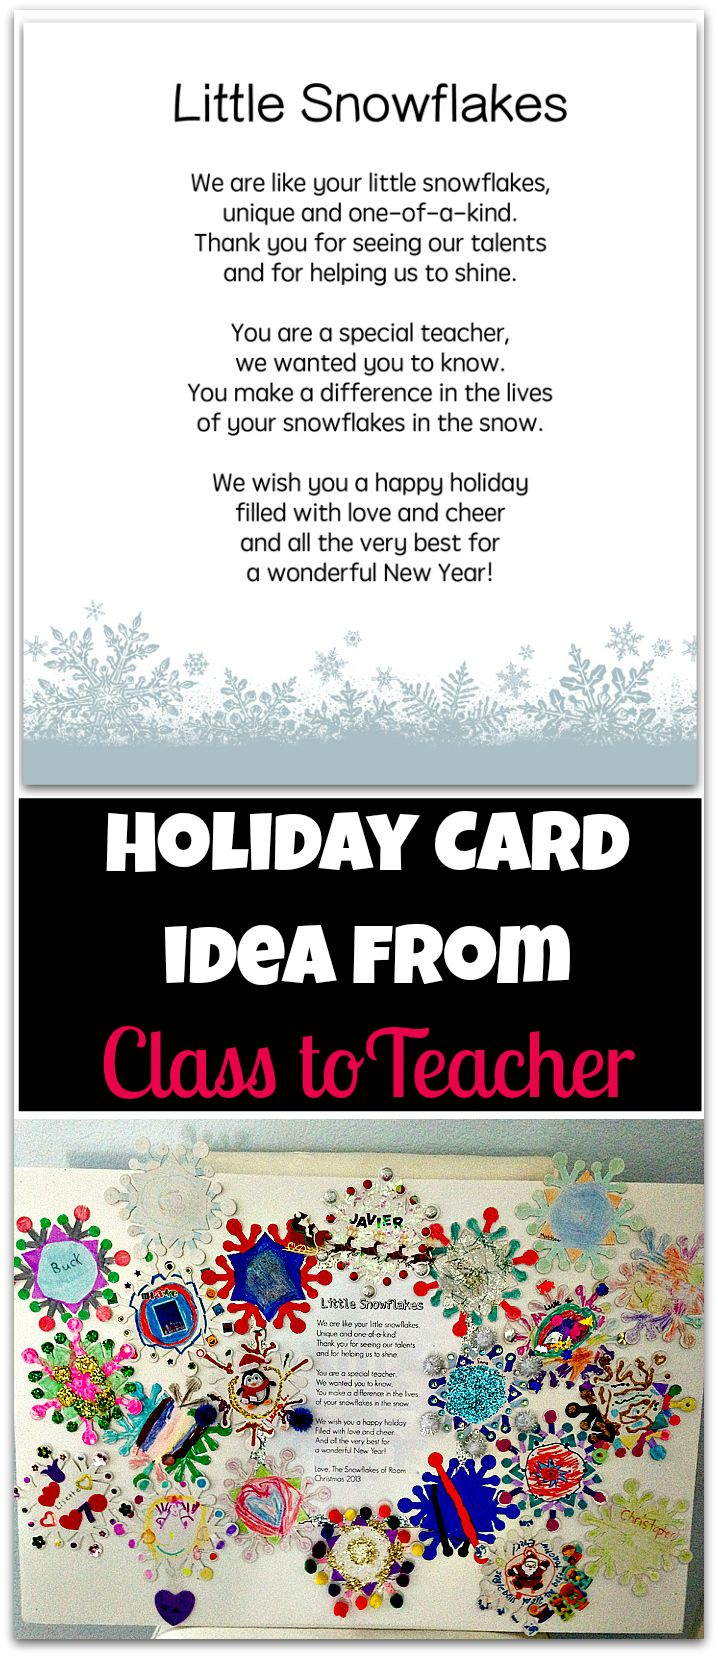 I did this holiday card project for my daughter's 2nd grade teacher last year when I was room mom and it turned out pretty darn cute so I wanted to share this holiday card idea from class to teacher with you.